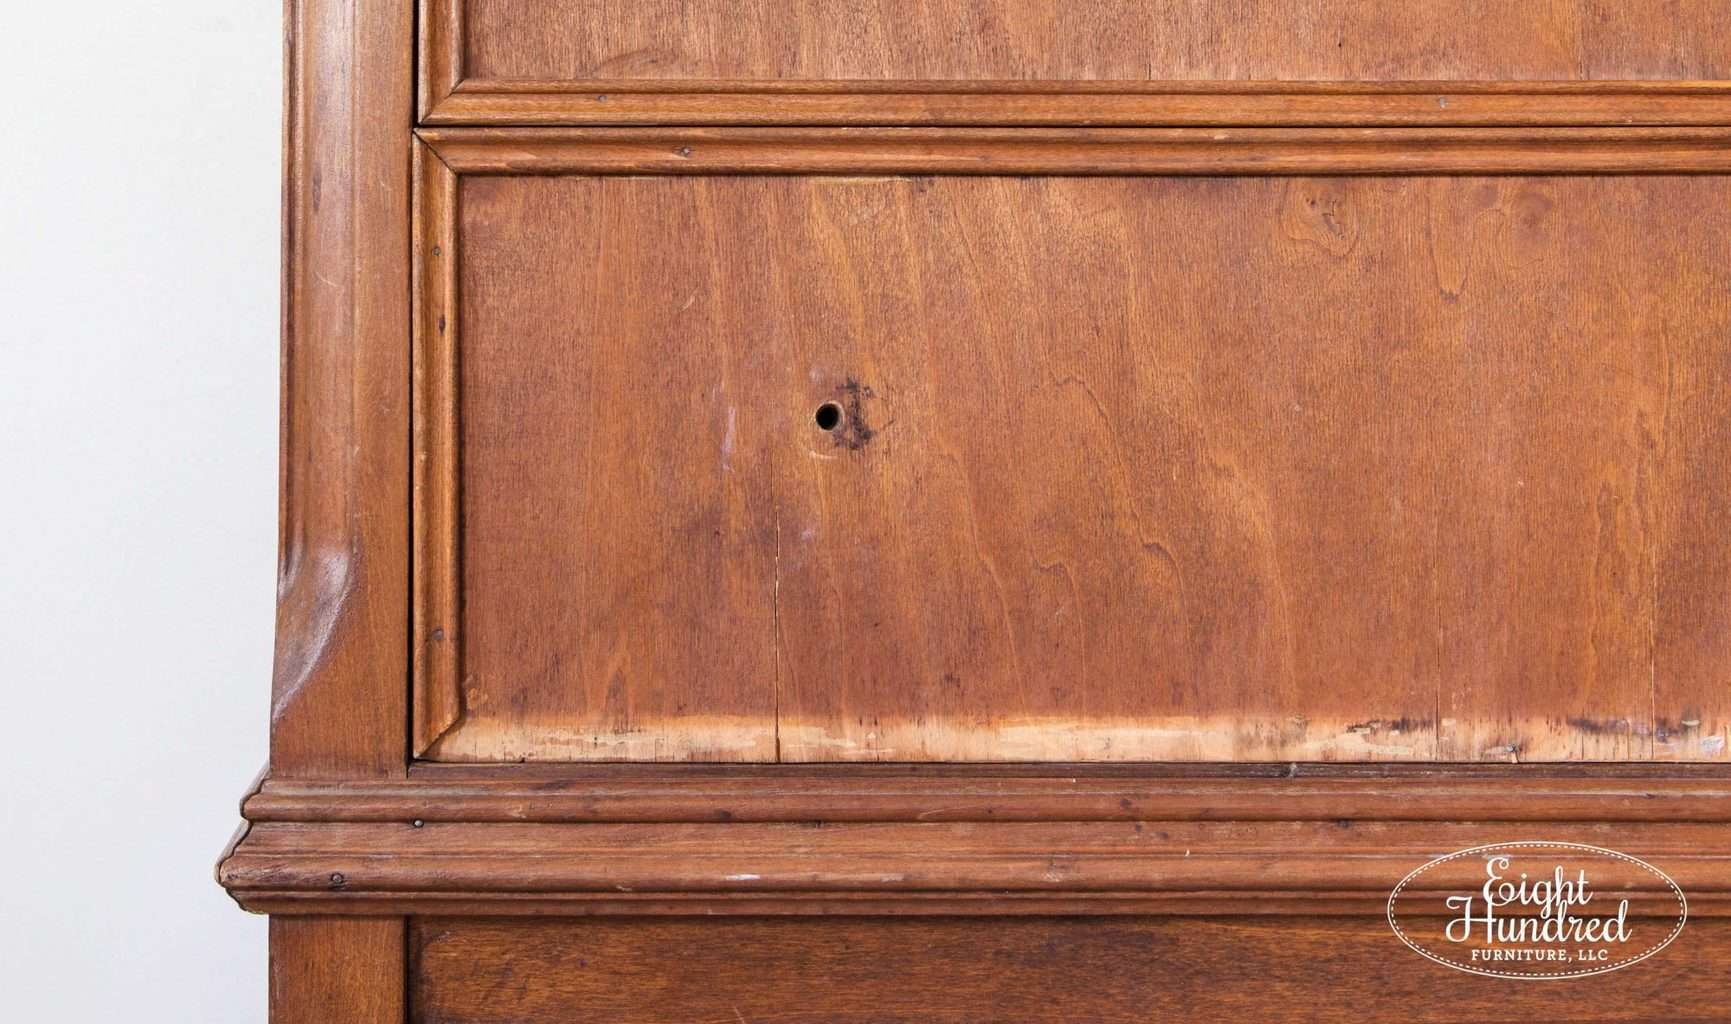 Close up of missing trim on the bottom drawer